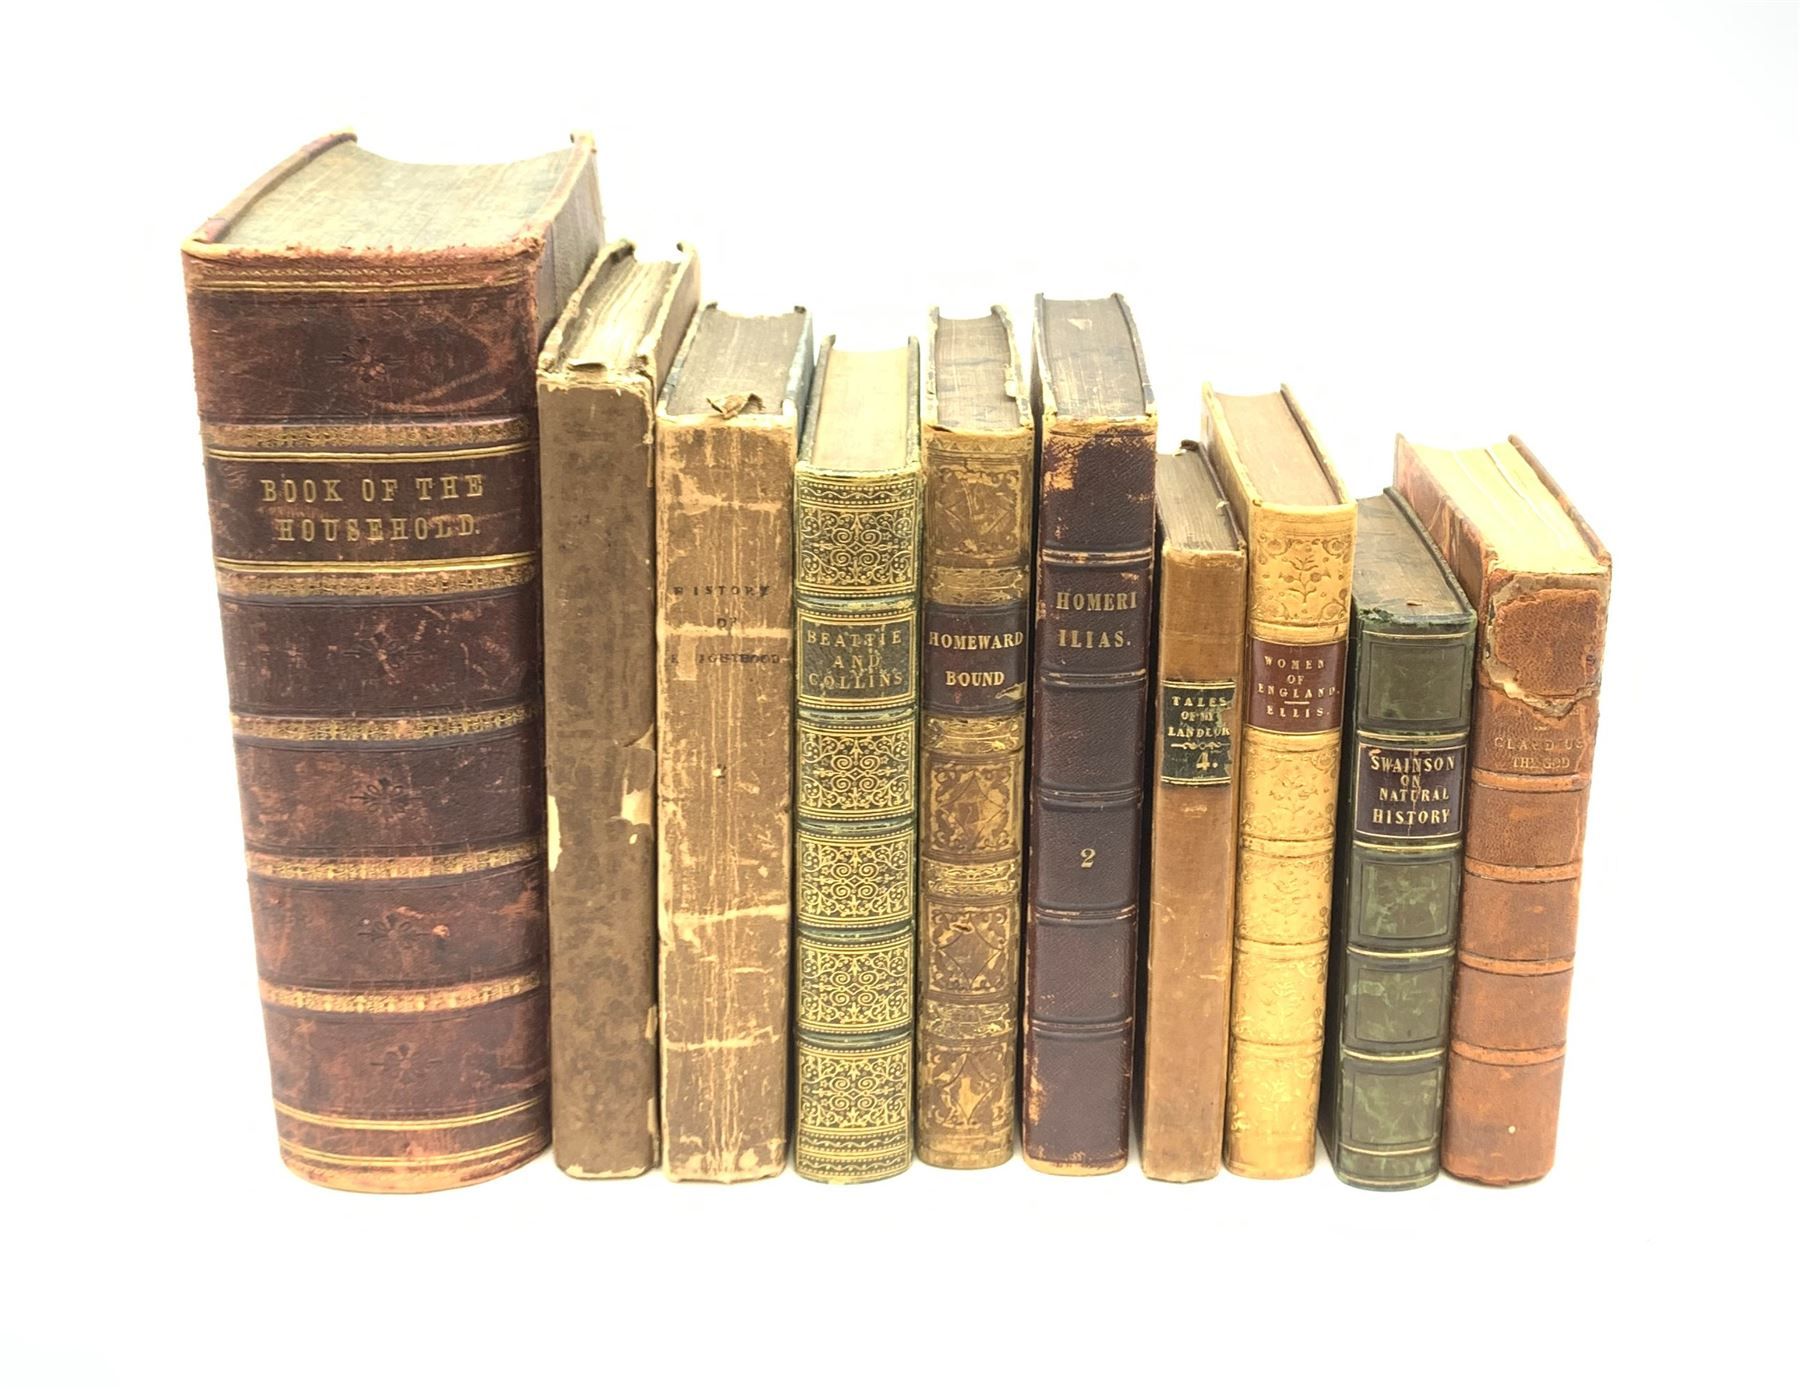 The Book of the Household with half leather binding; seven other 19th century leather bound books in